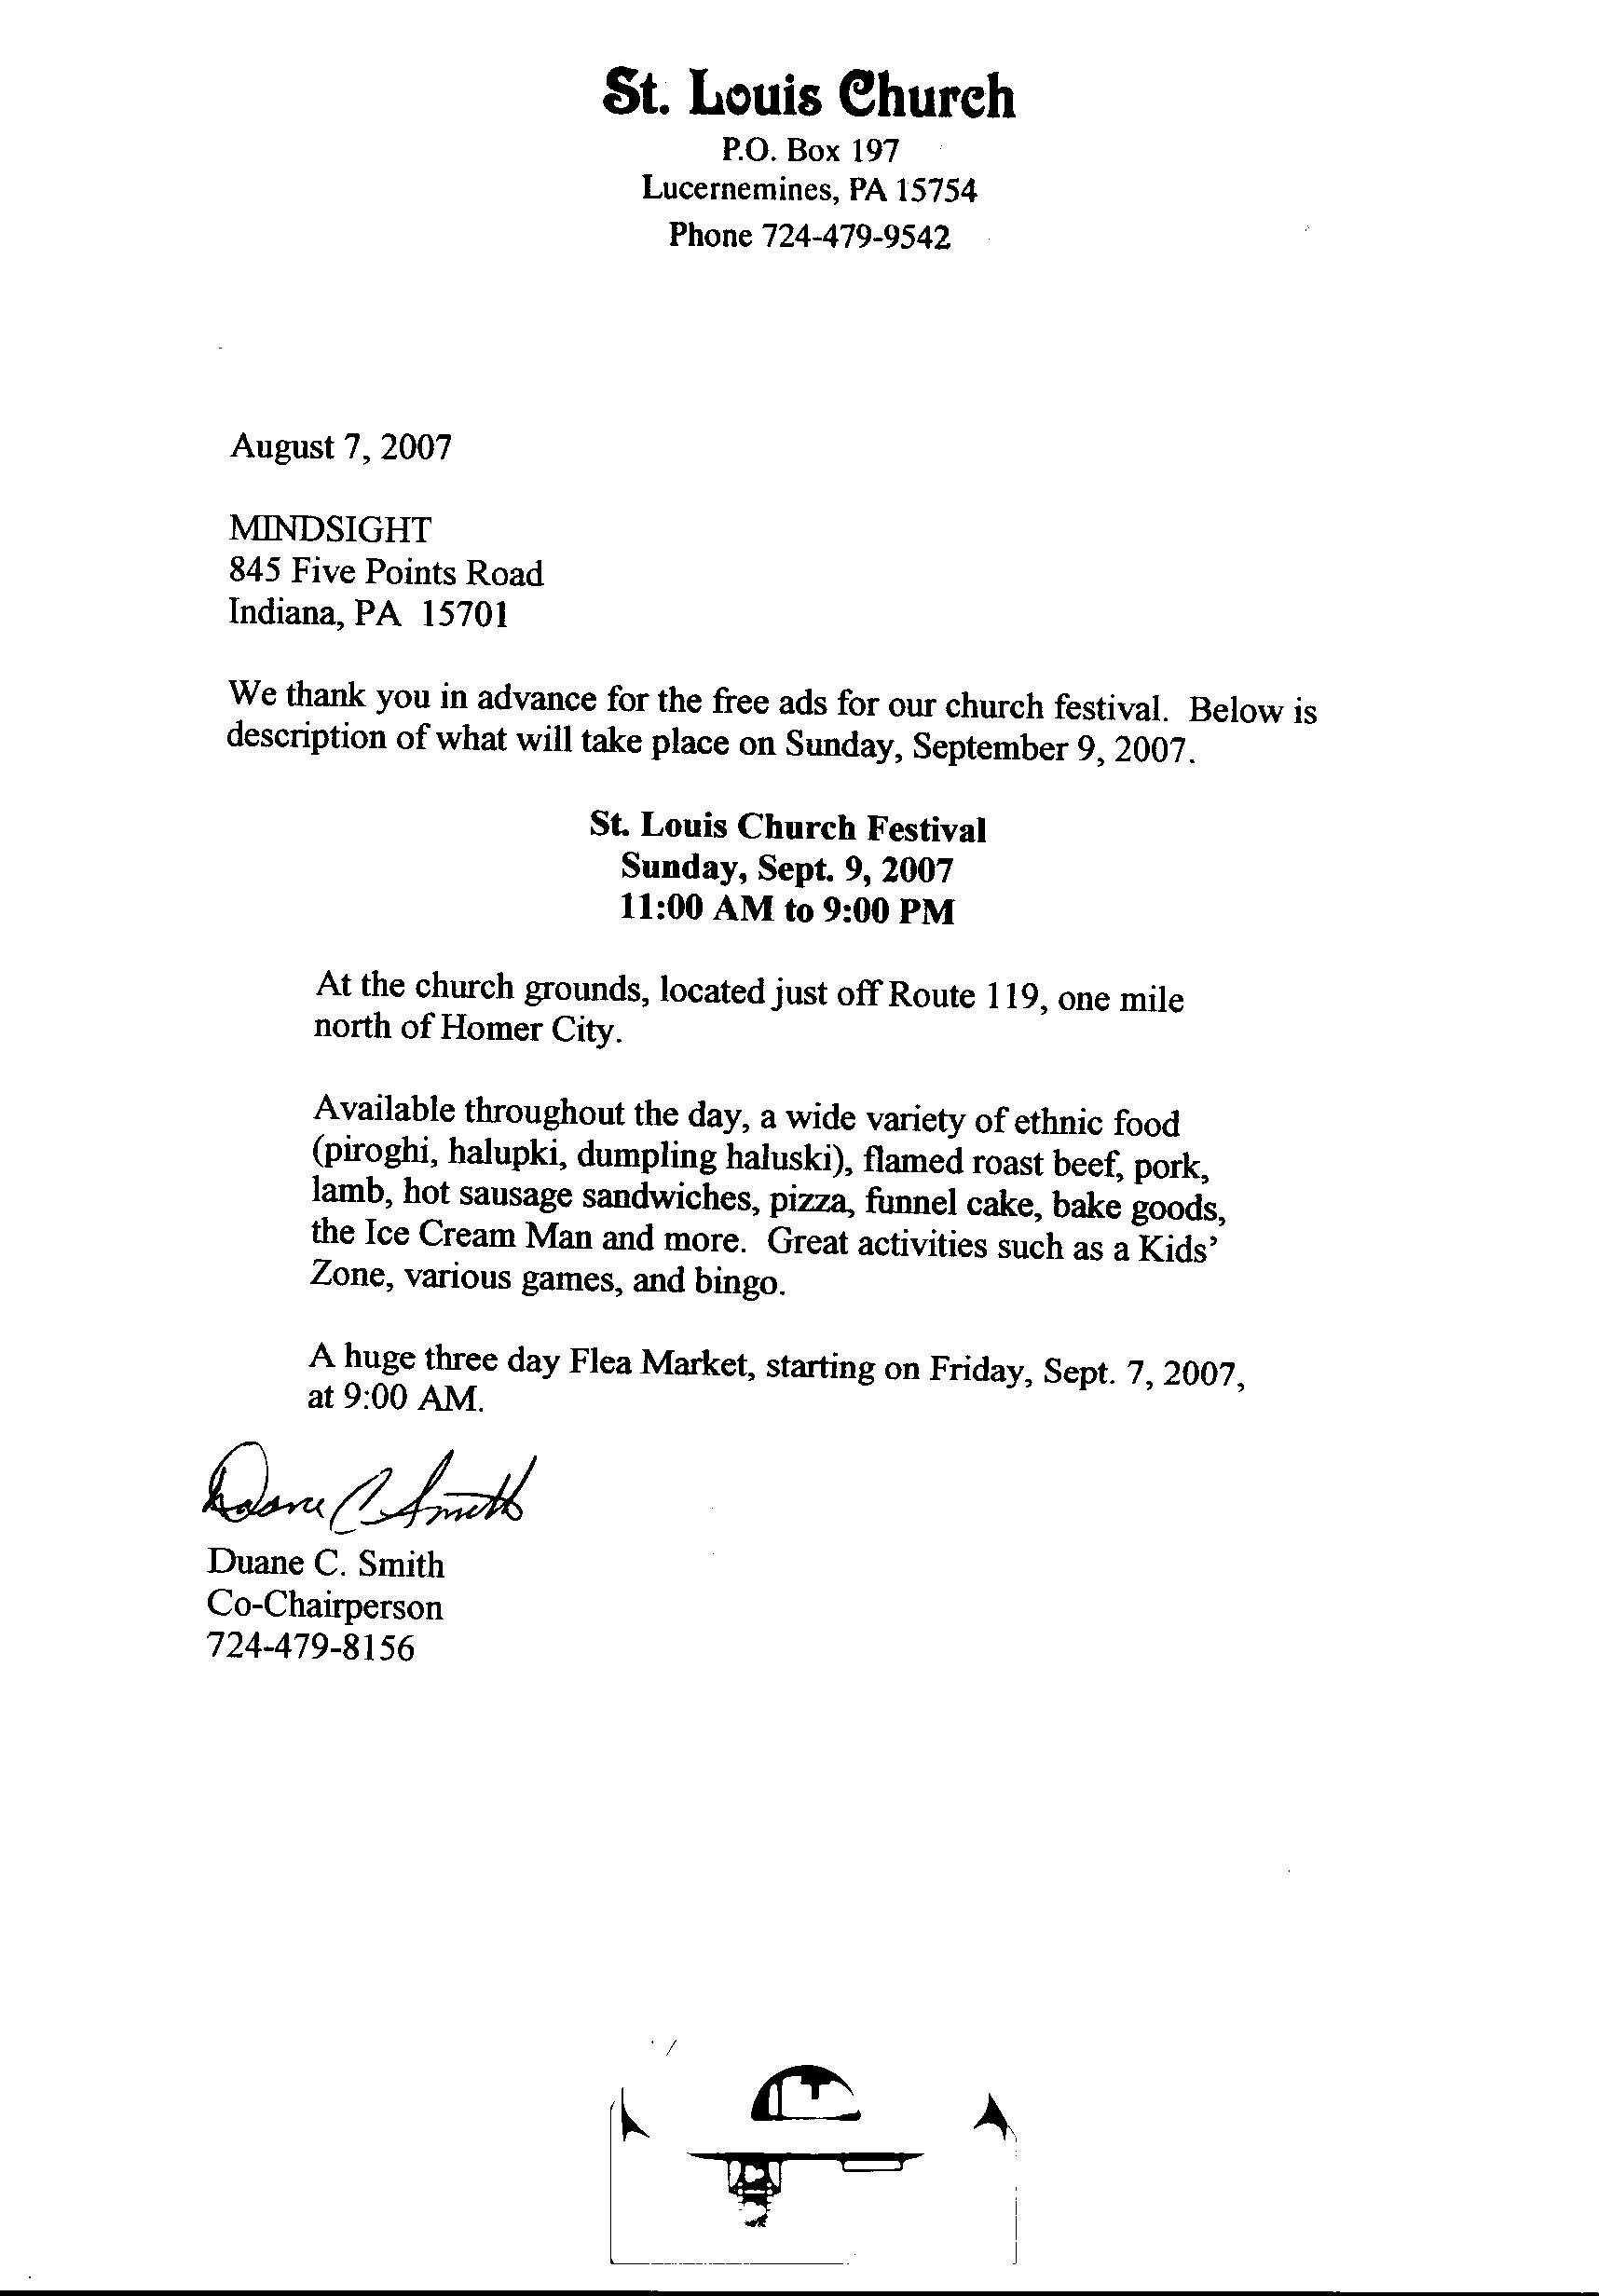 Non Profit Donation Thank You Letter Template - Church Donation form Template to Her with Donation Thank You